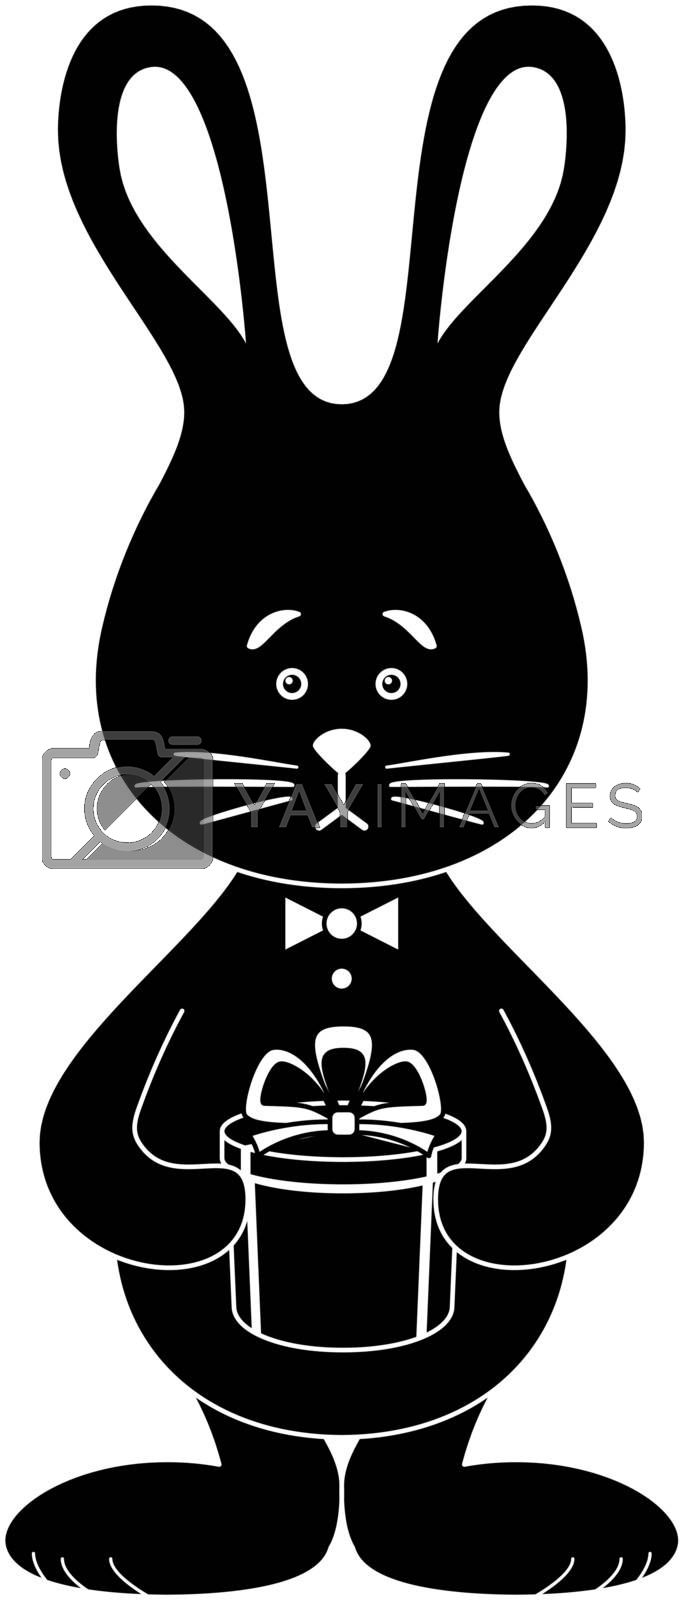 Holiday cartoon, toy rabbit with a gift box, black silhouette on white background. Vector